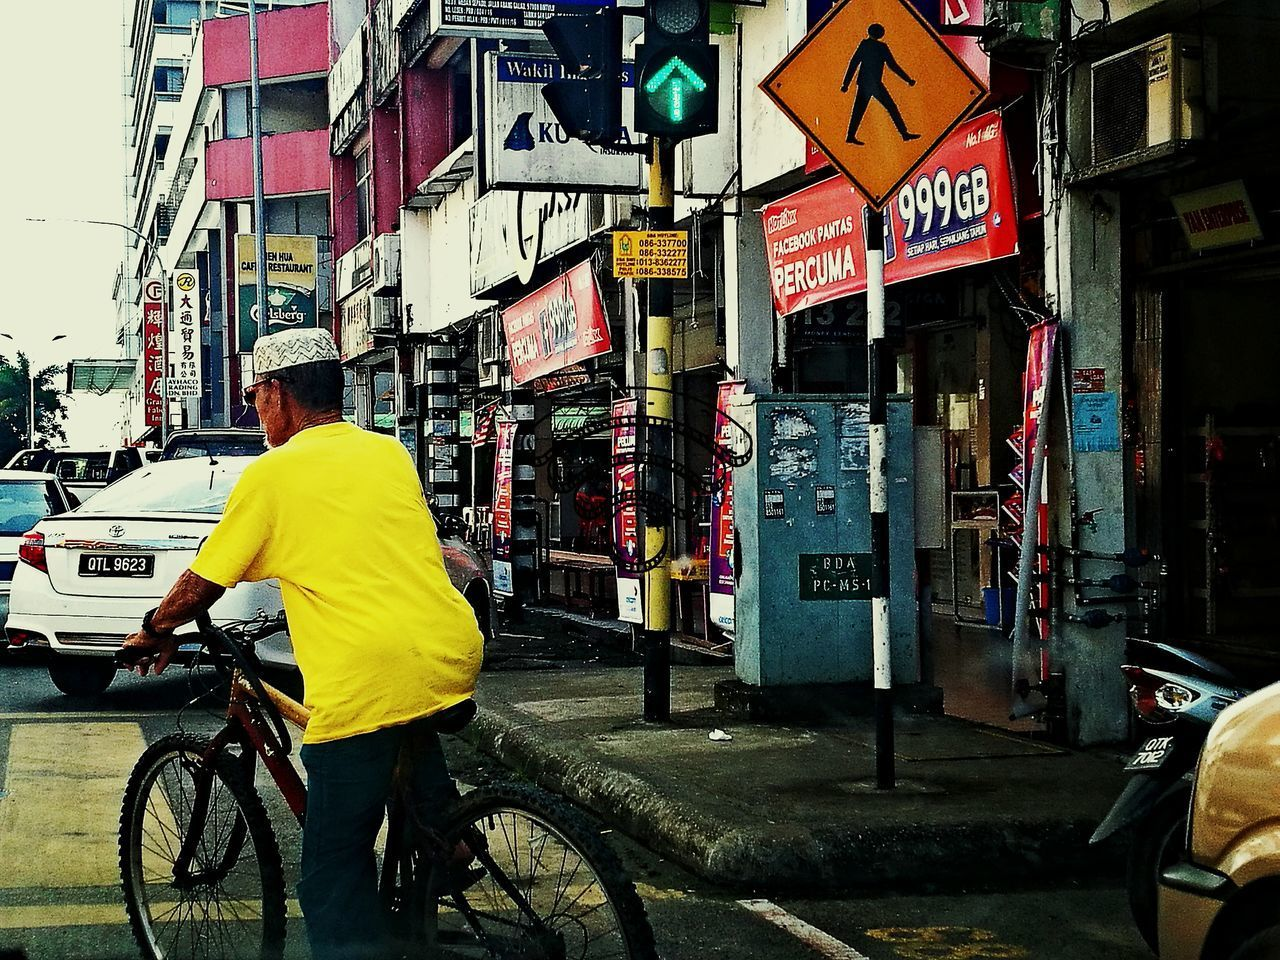 REAR VIEW OF MAN WITH BICYCLE ON ROAD